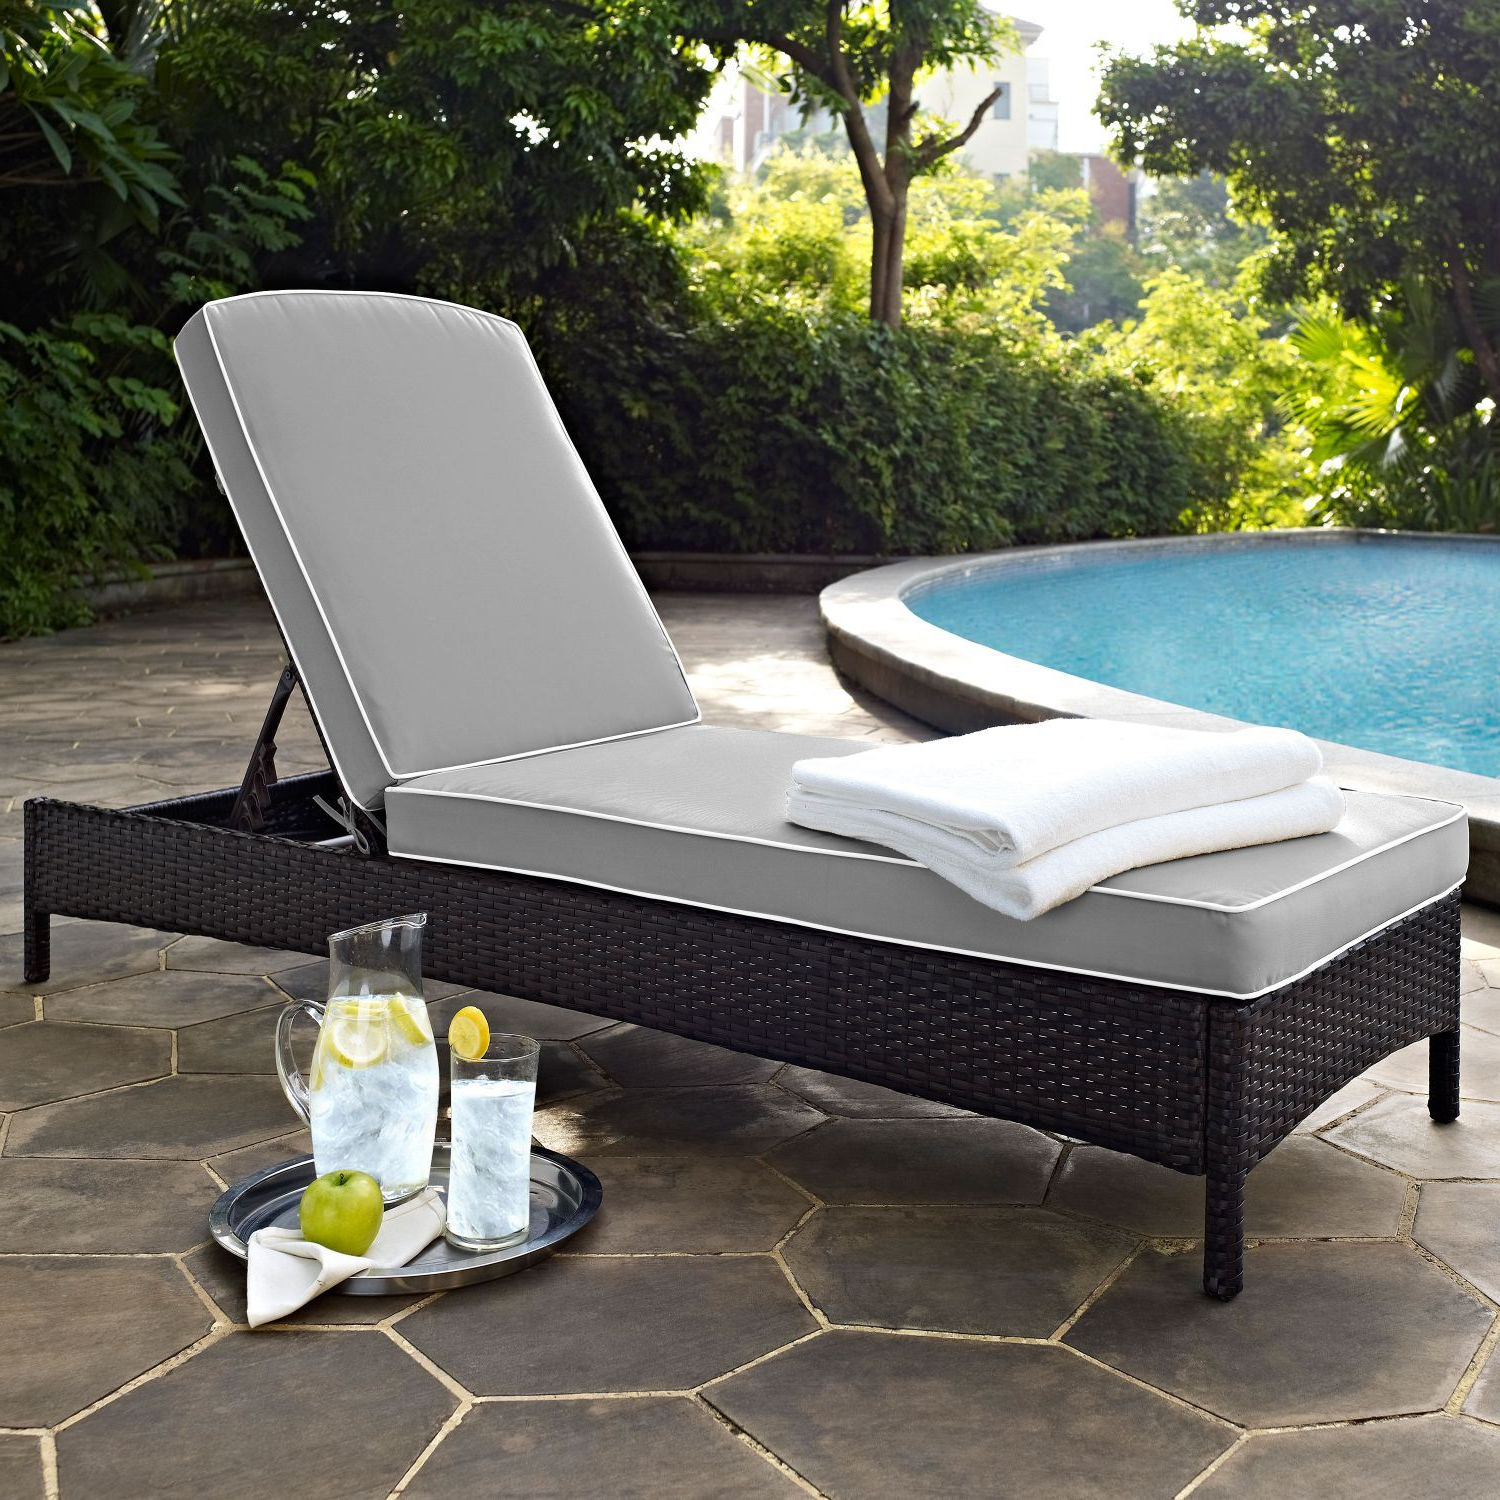 Outdoor Wicker Chaise Lounge Chairs For Favorite Palm Harbor Outdoor Wicker Chaise Lounge In Brown (View 13 of 25)